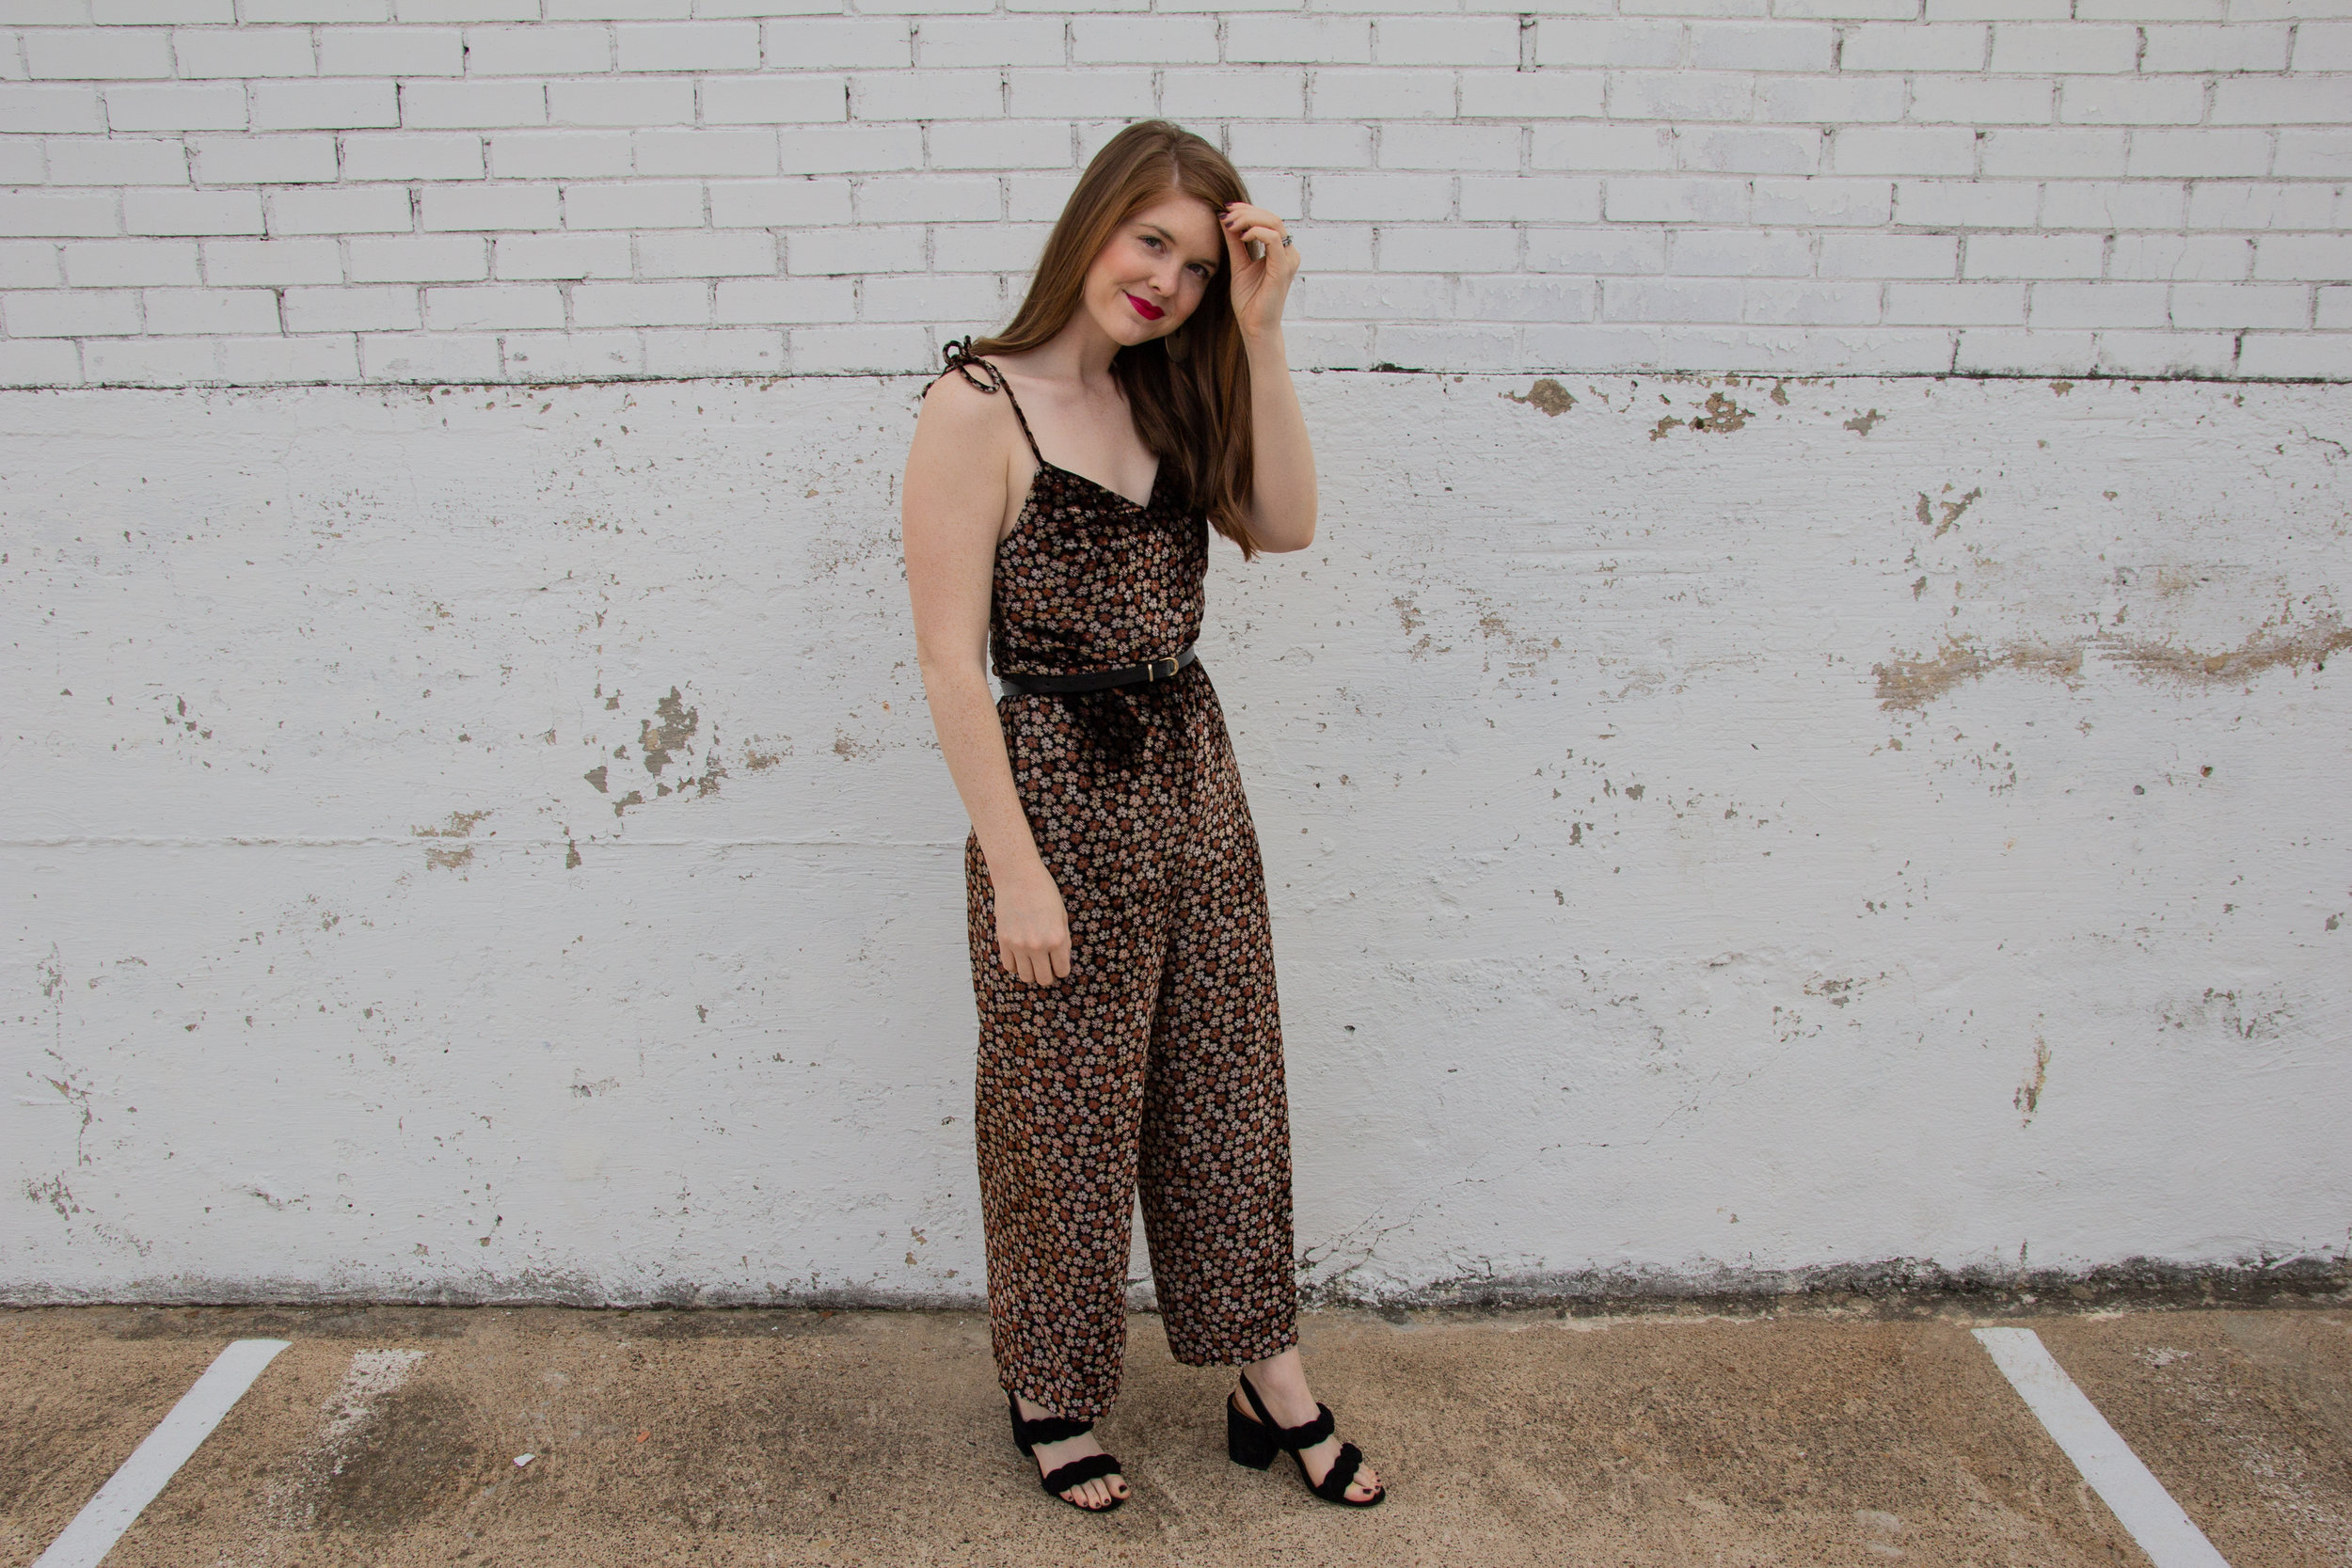 madewell velvet thistle cami jumpsuit, kendra scott diane earrings, the art of versatility velvet jumpsuit 3 ways, holiday party outfit idea, what to wear to a christmas party, rebecca minkoff candance sandals, natural red lipstick